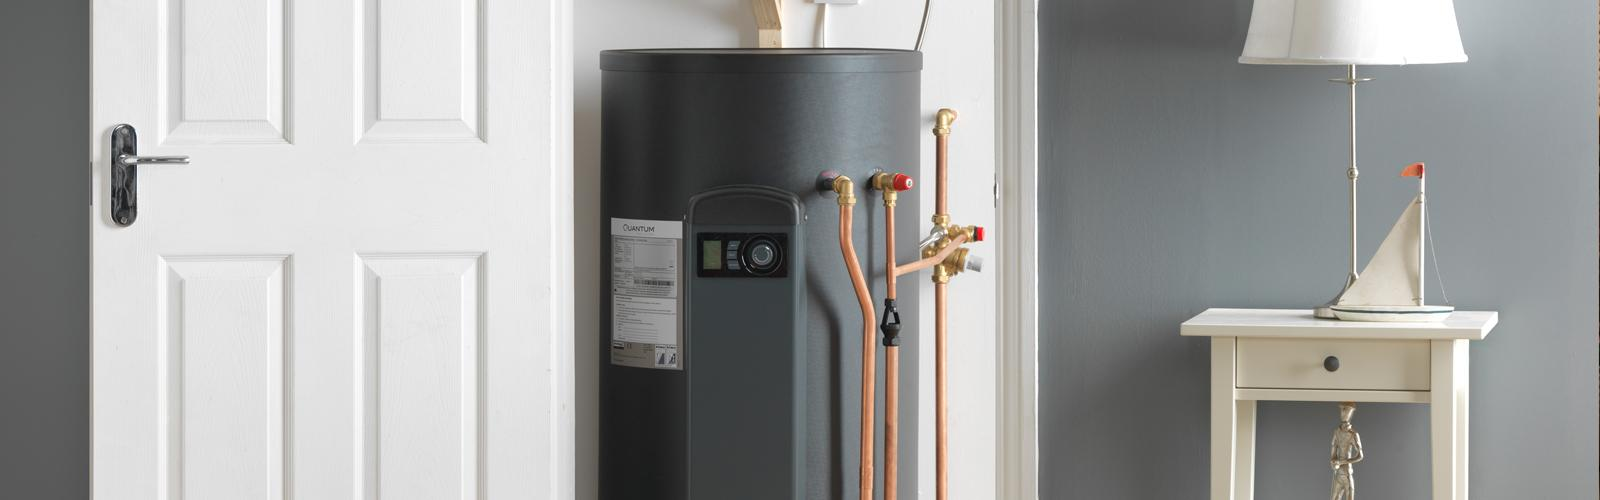 Electric heating in the home water cylinders – Dimplex